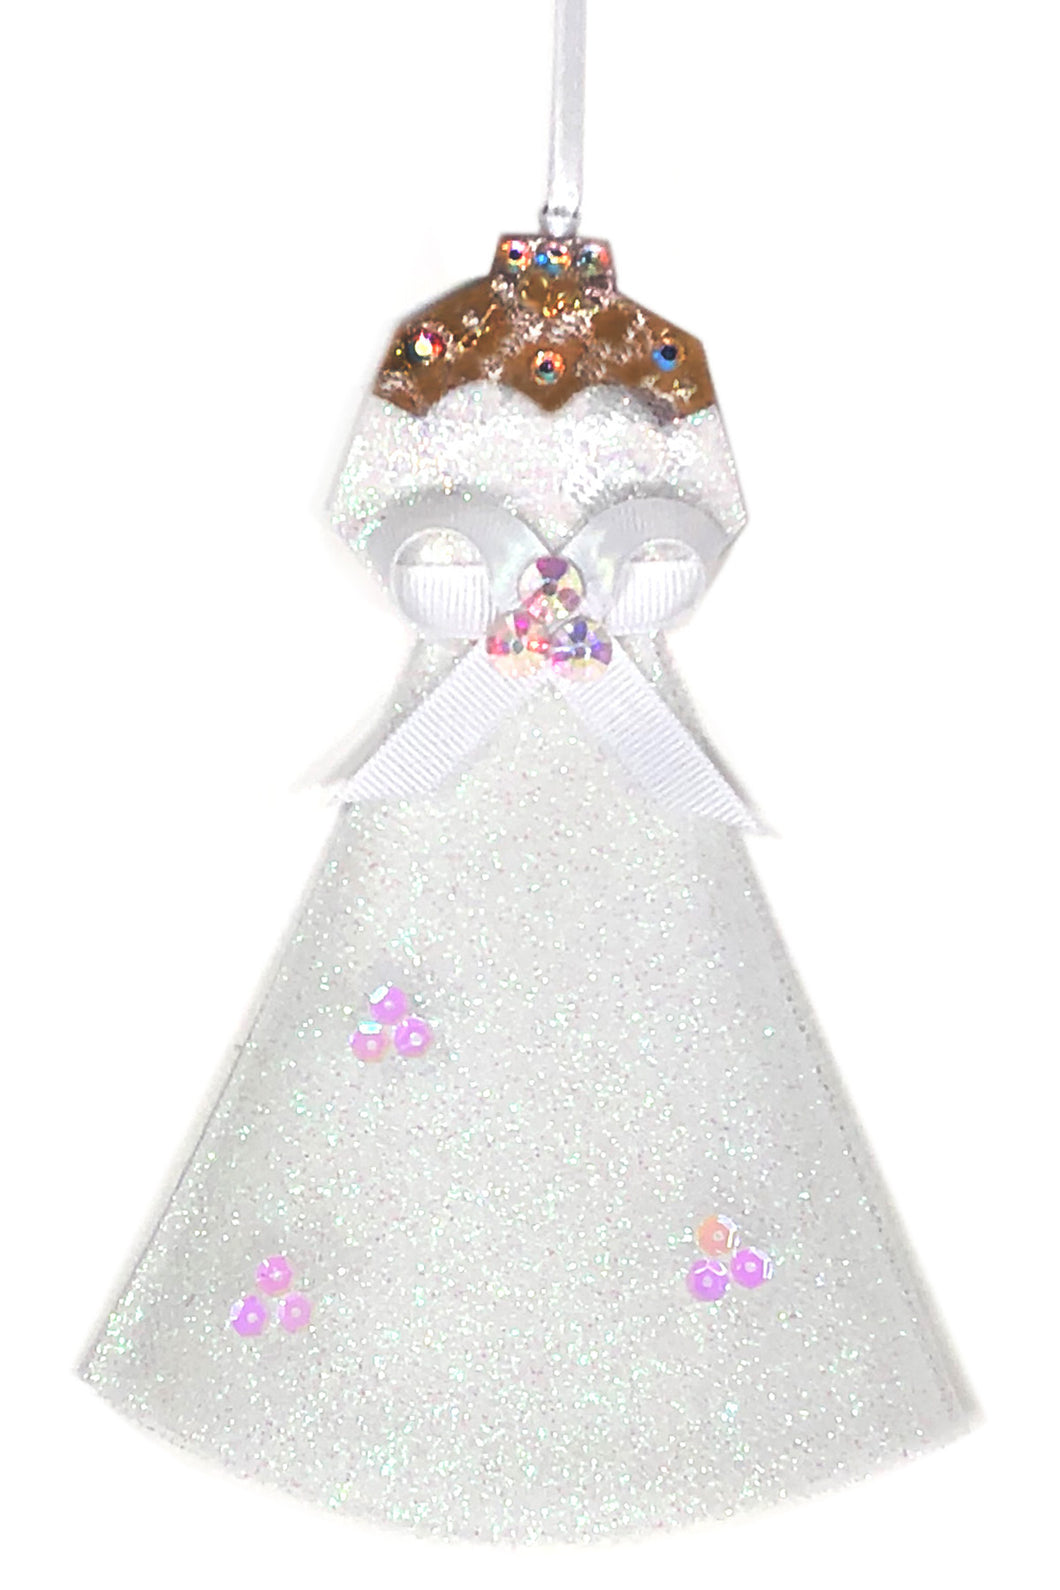 Wedding Gown Christmas Ornament - Medium/Dark Skin Tone